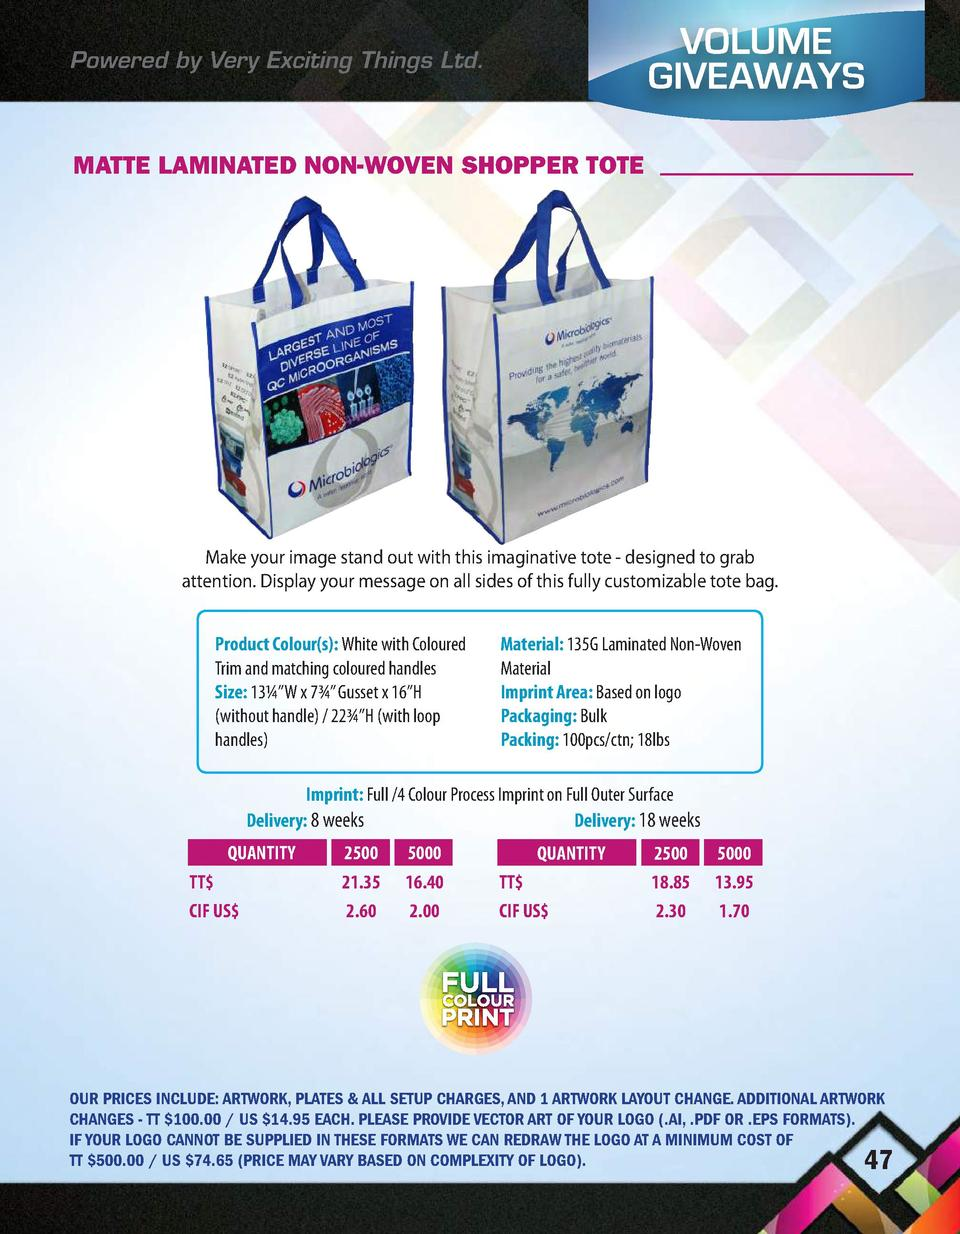 VOLUME GIVEAWAYS  Powered by Very Exciting Things Ltd.  MATTE LAMINATED NON-WOVEN SHOPPER TOTE  Make your image stand out ...